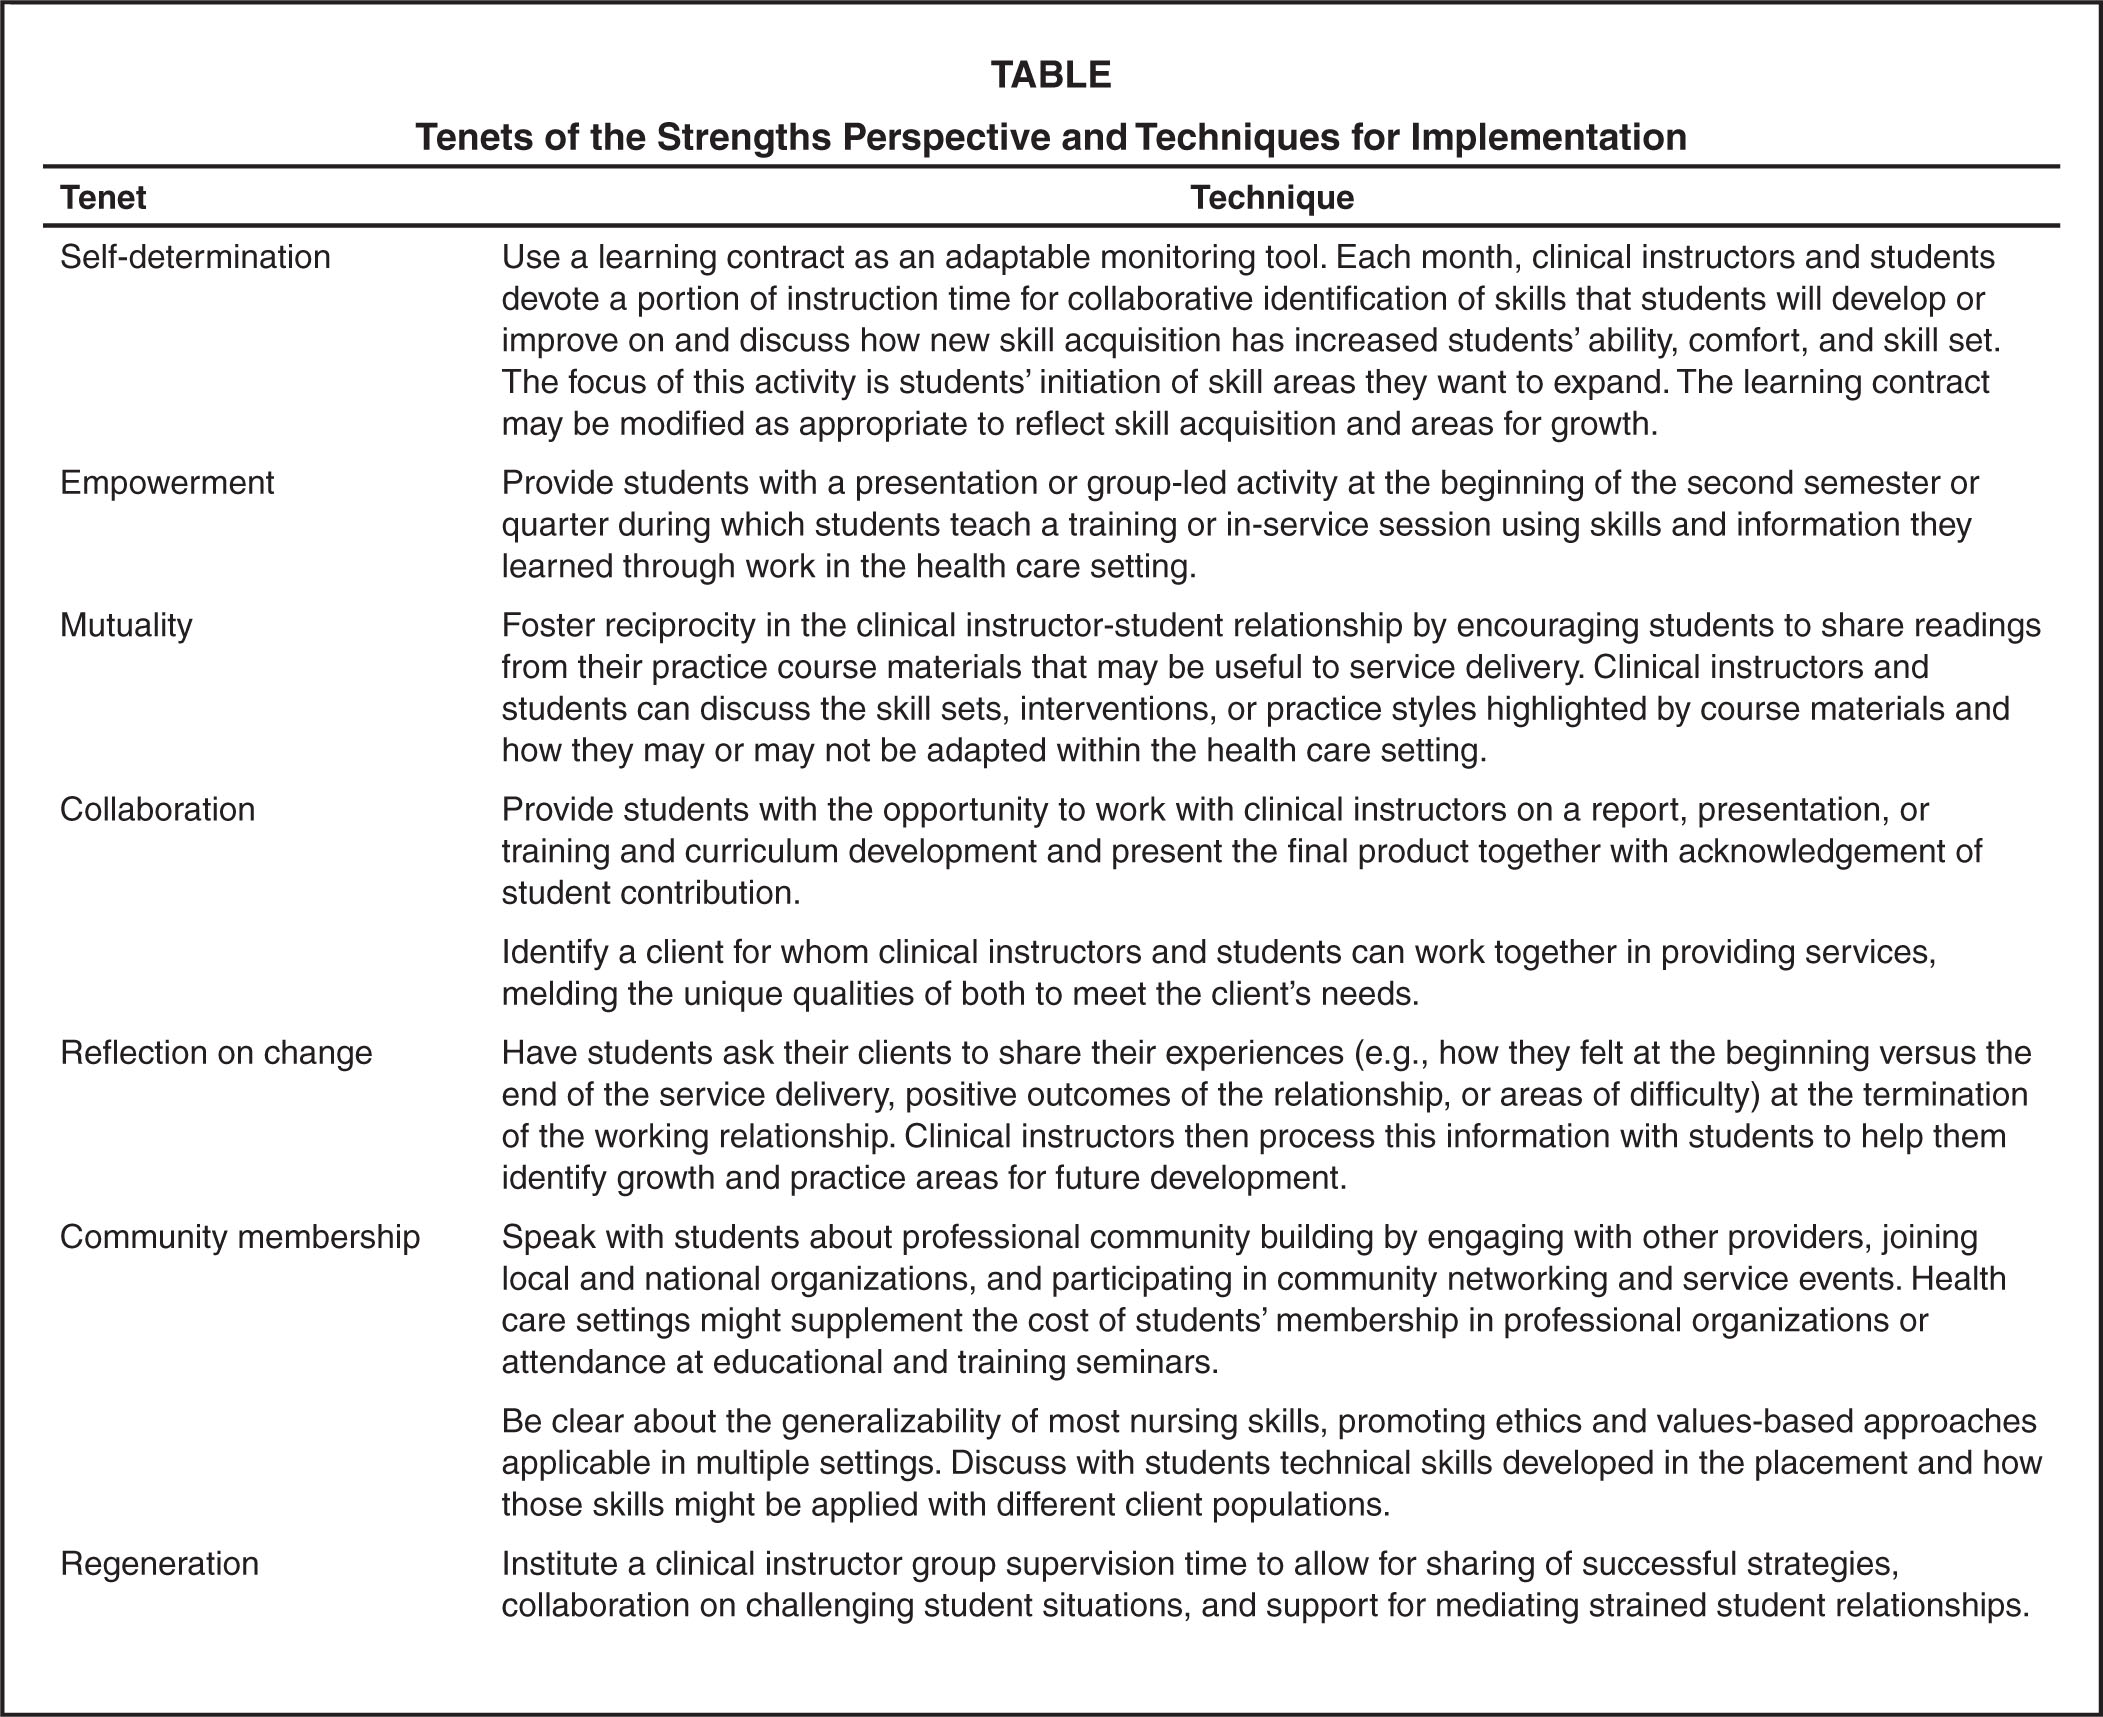 Tenets of the Strengths Perspective and Techniques for Implementation